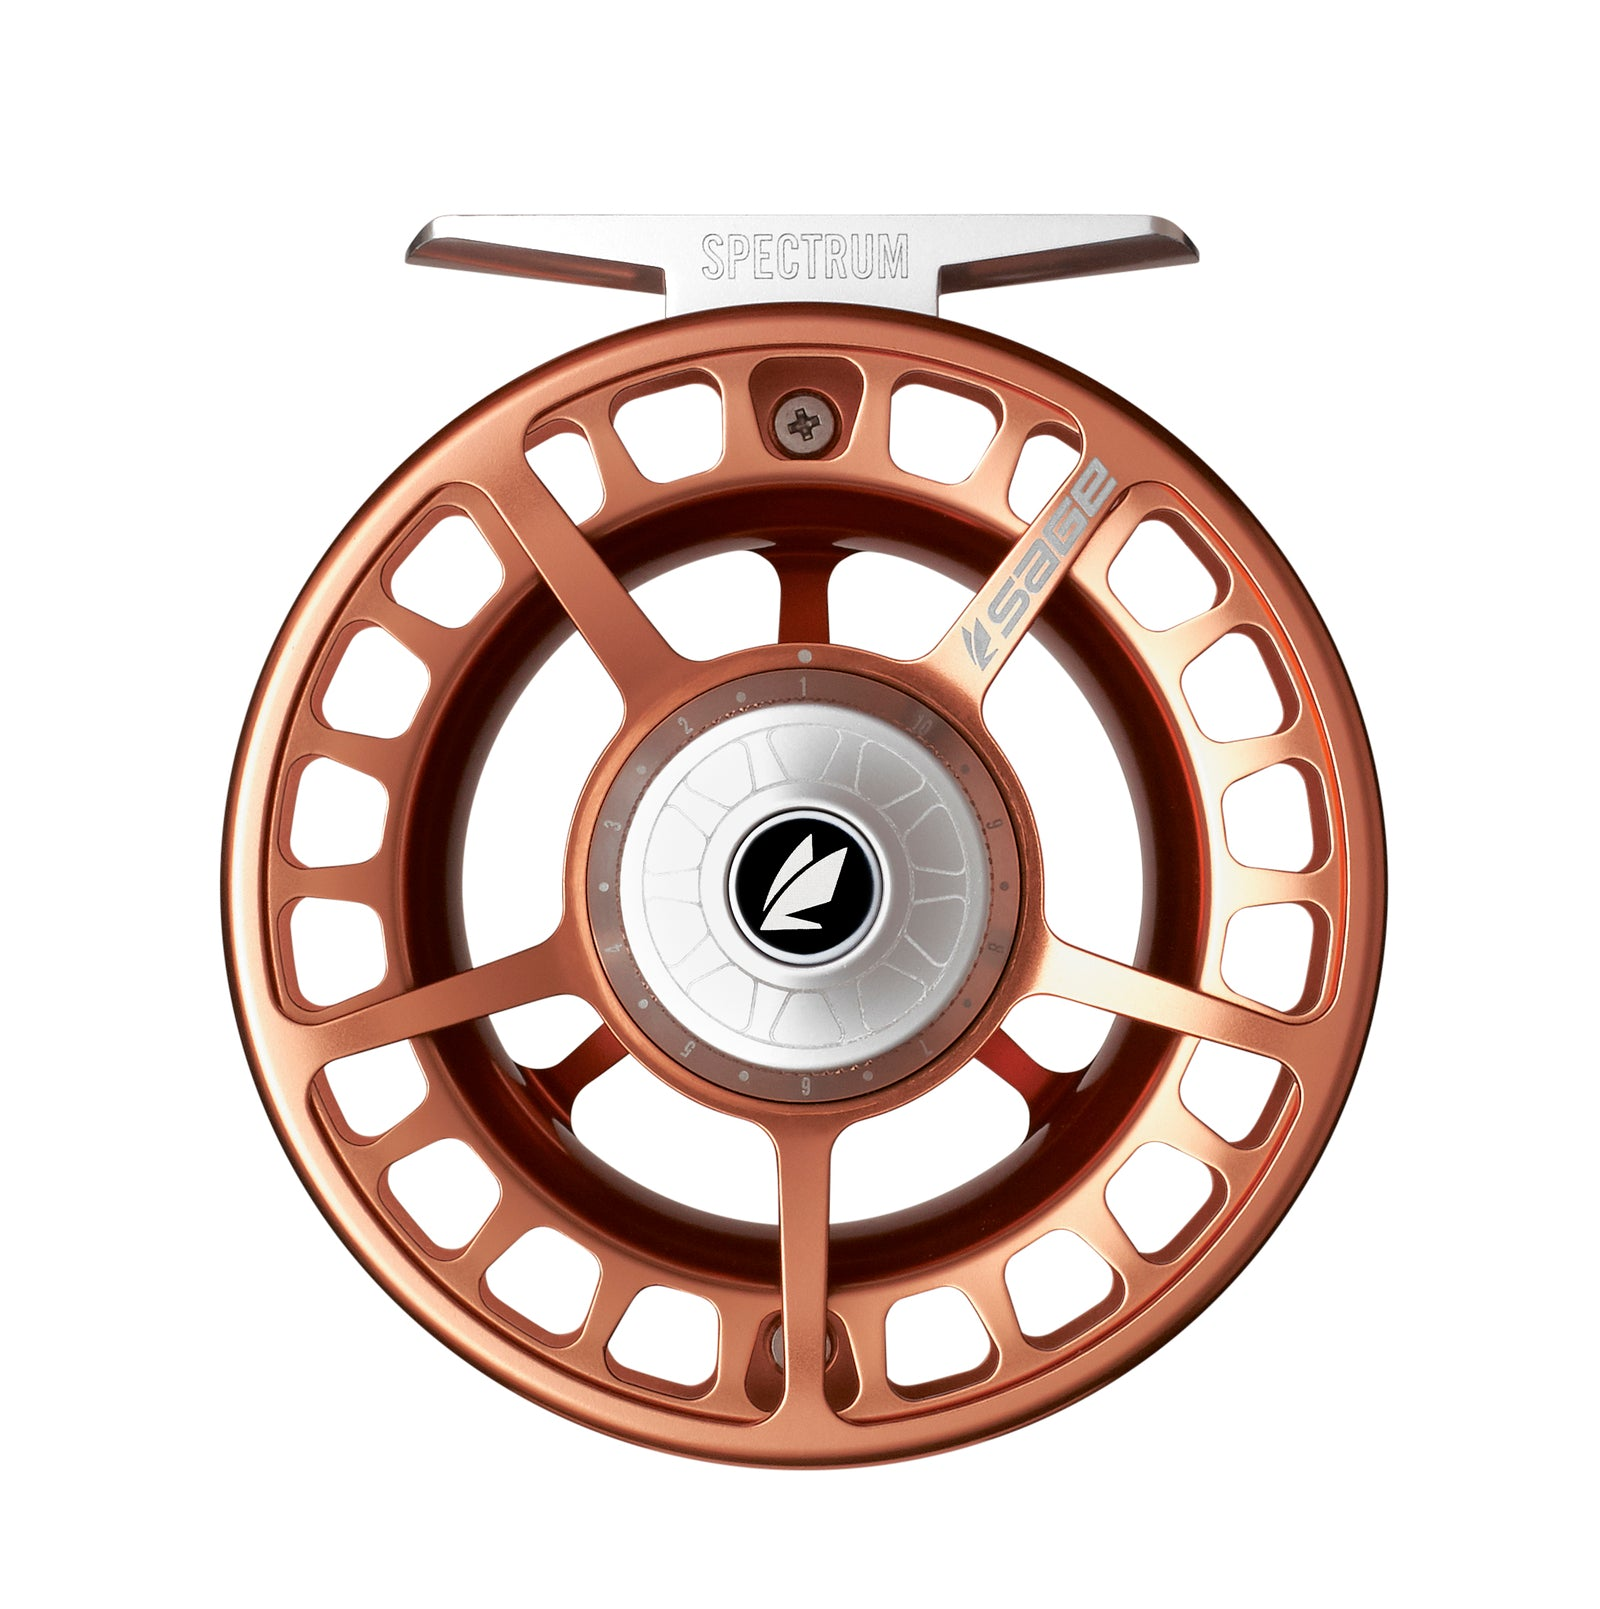 Sage Spectrum Fly Reel -